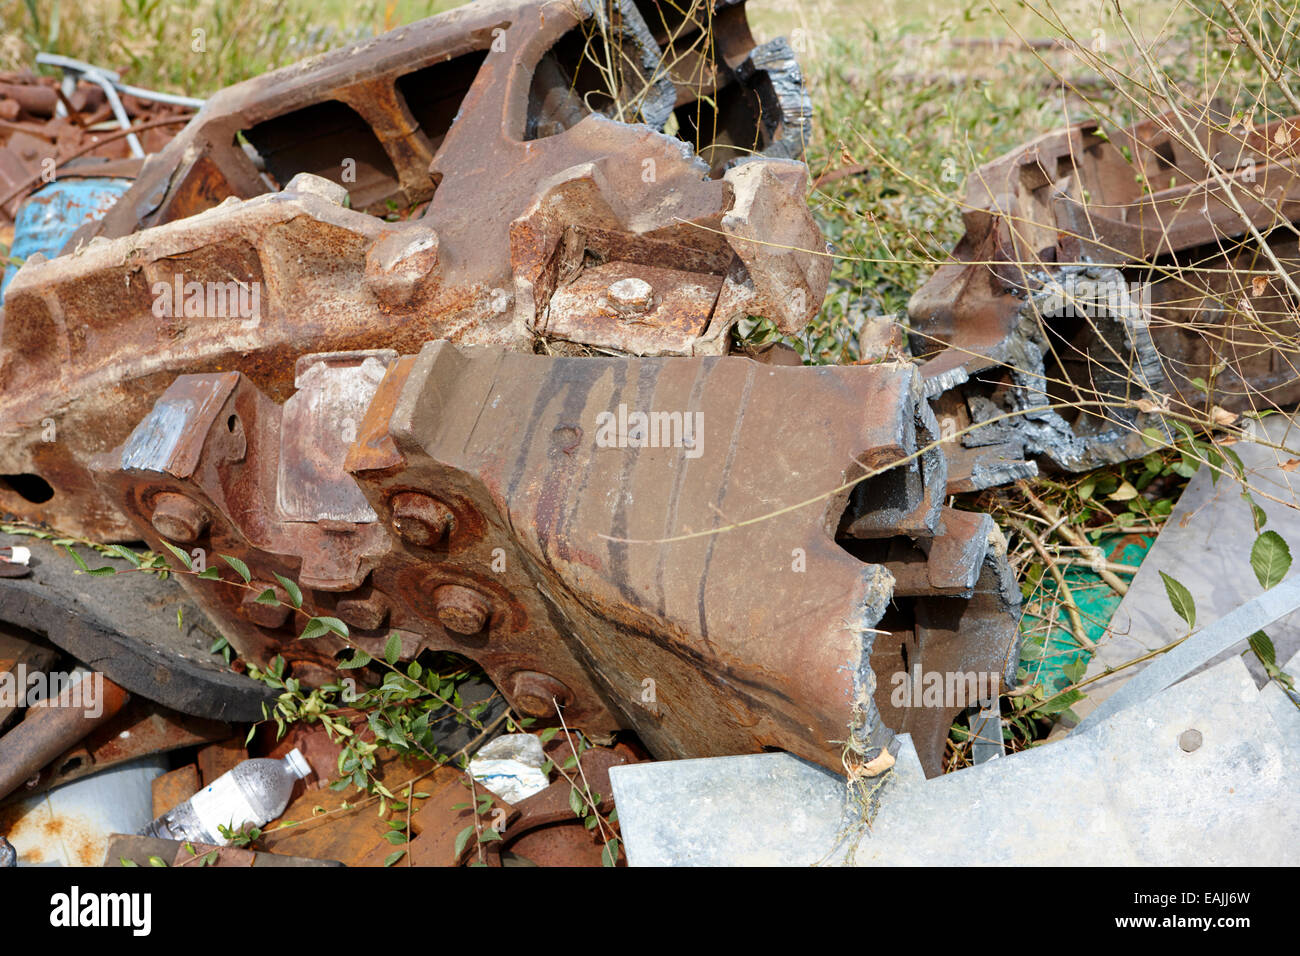 broken train couplings parts heavy engineering damaged - Stock Image